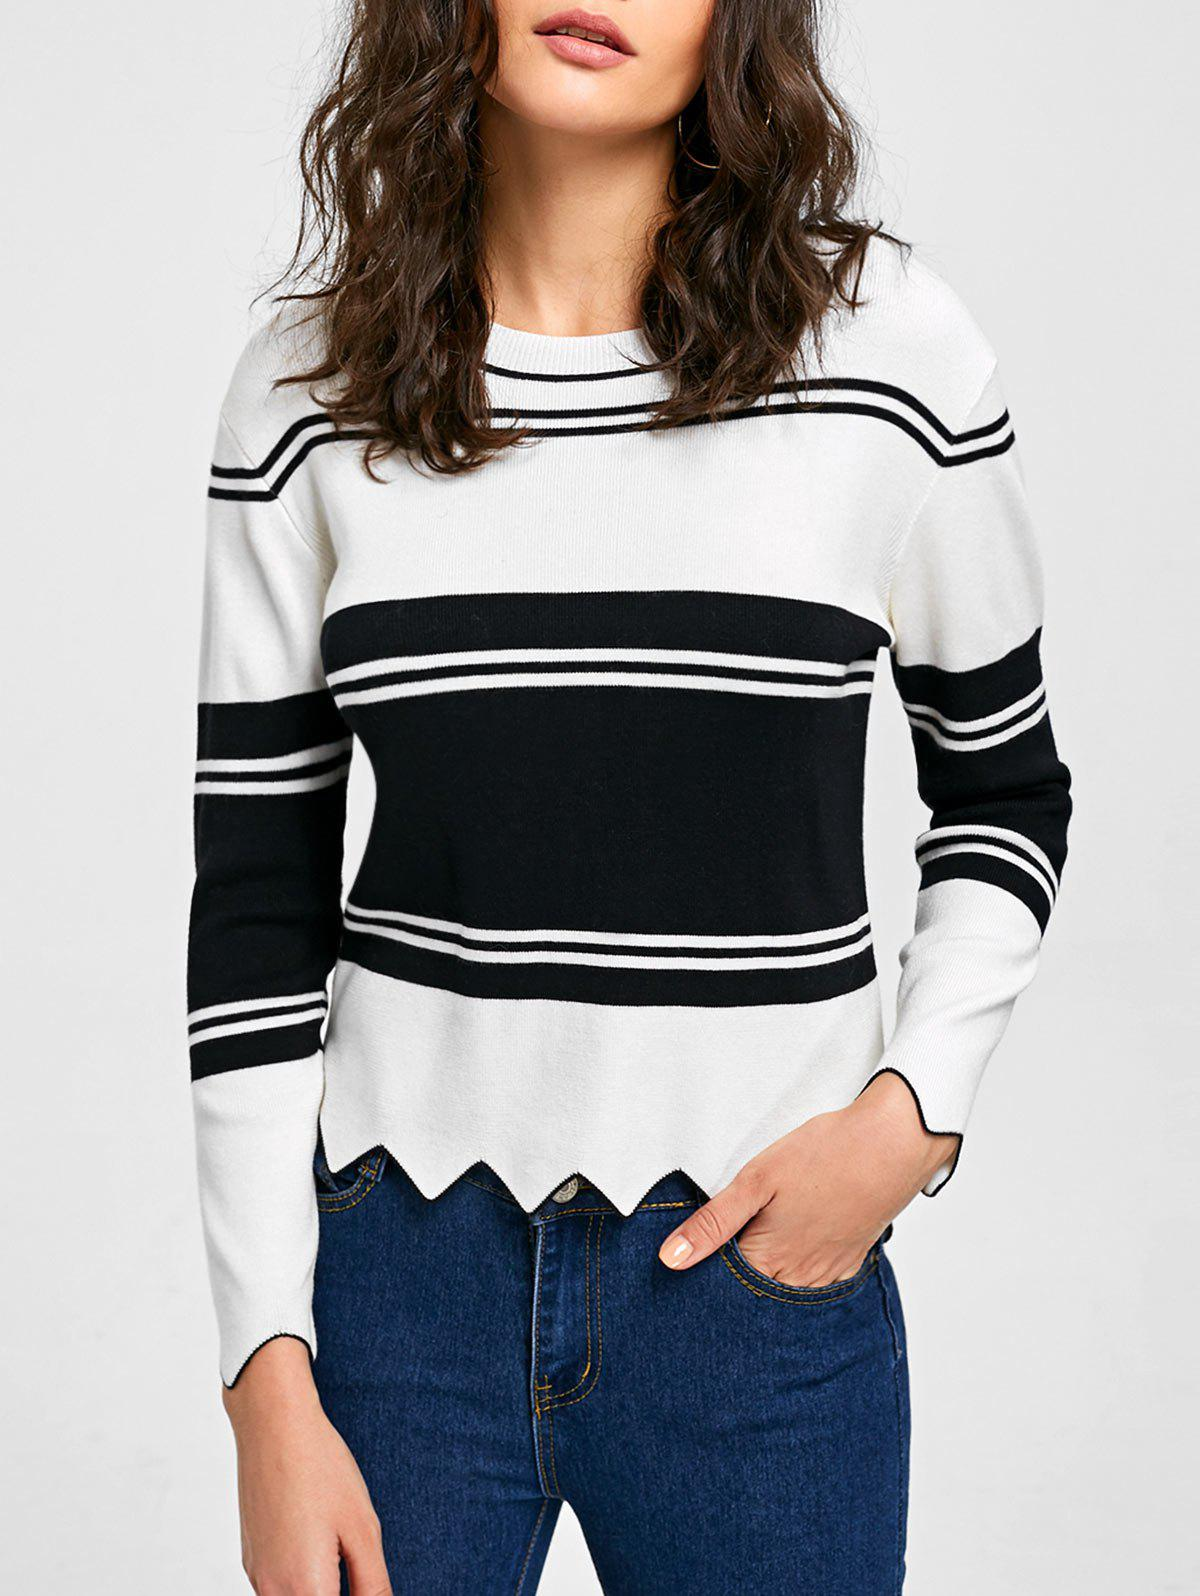 High Low Drop Shoulder Trim Sweater - WHITE/BLACK 2XL